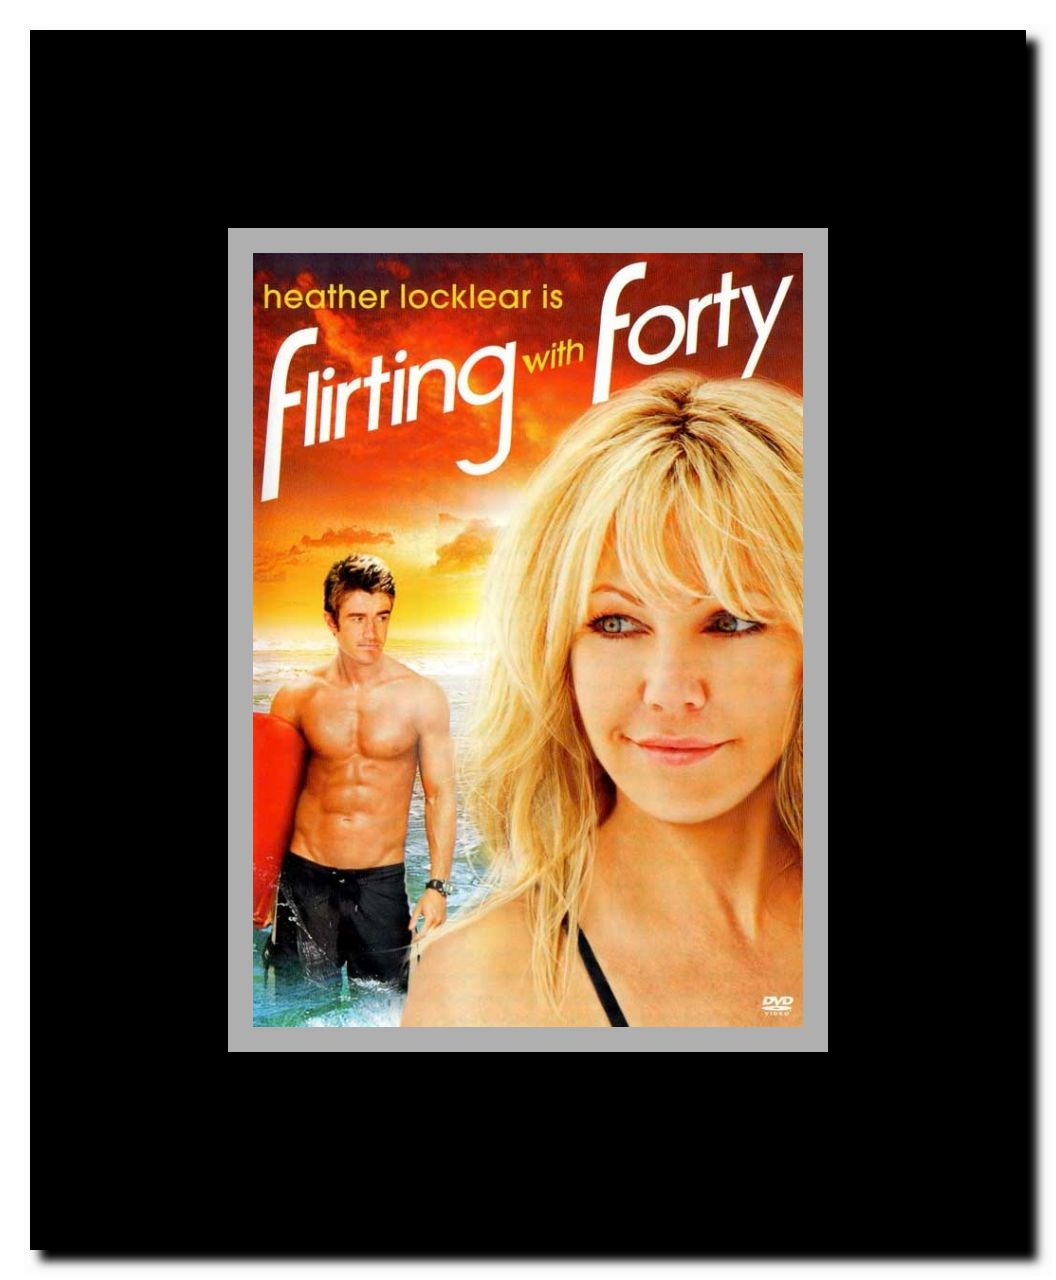 flirting with forty movie dvd review video games